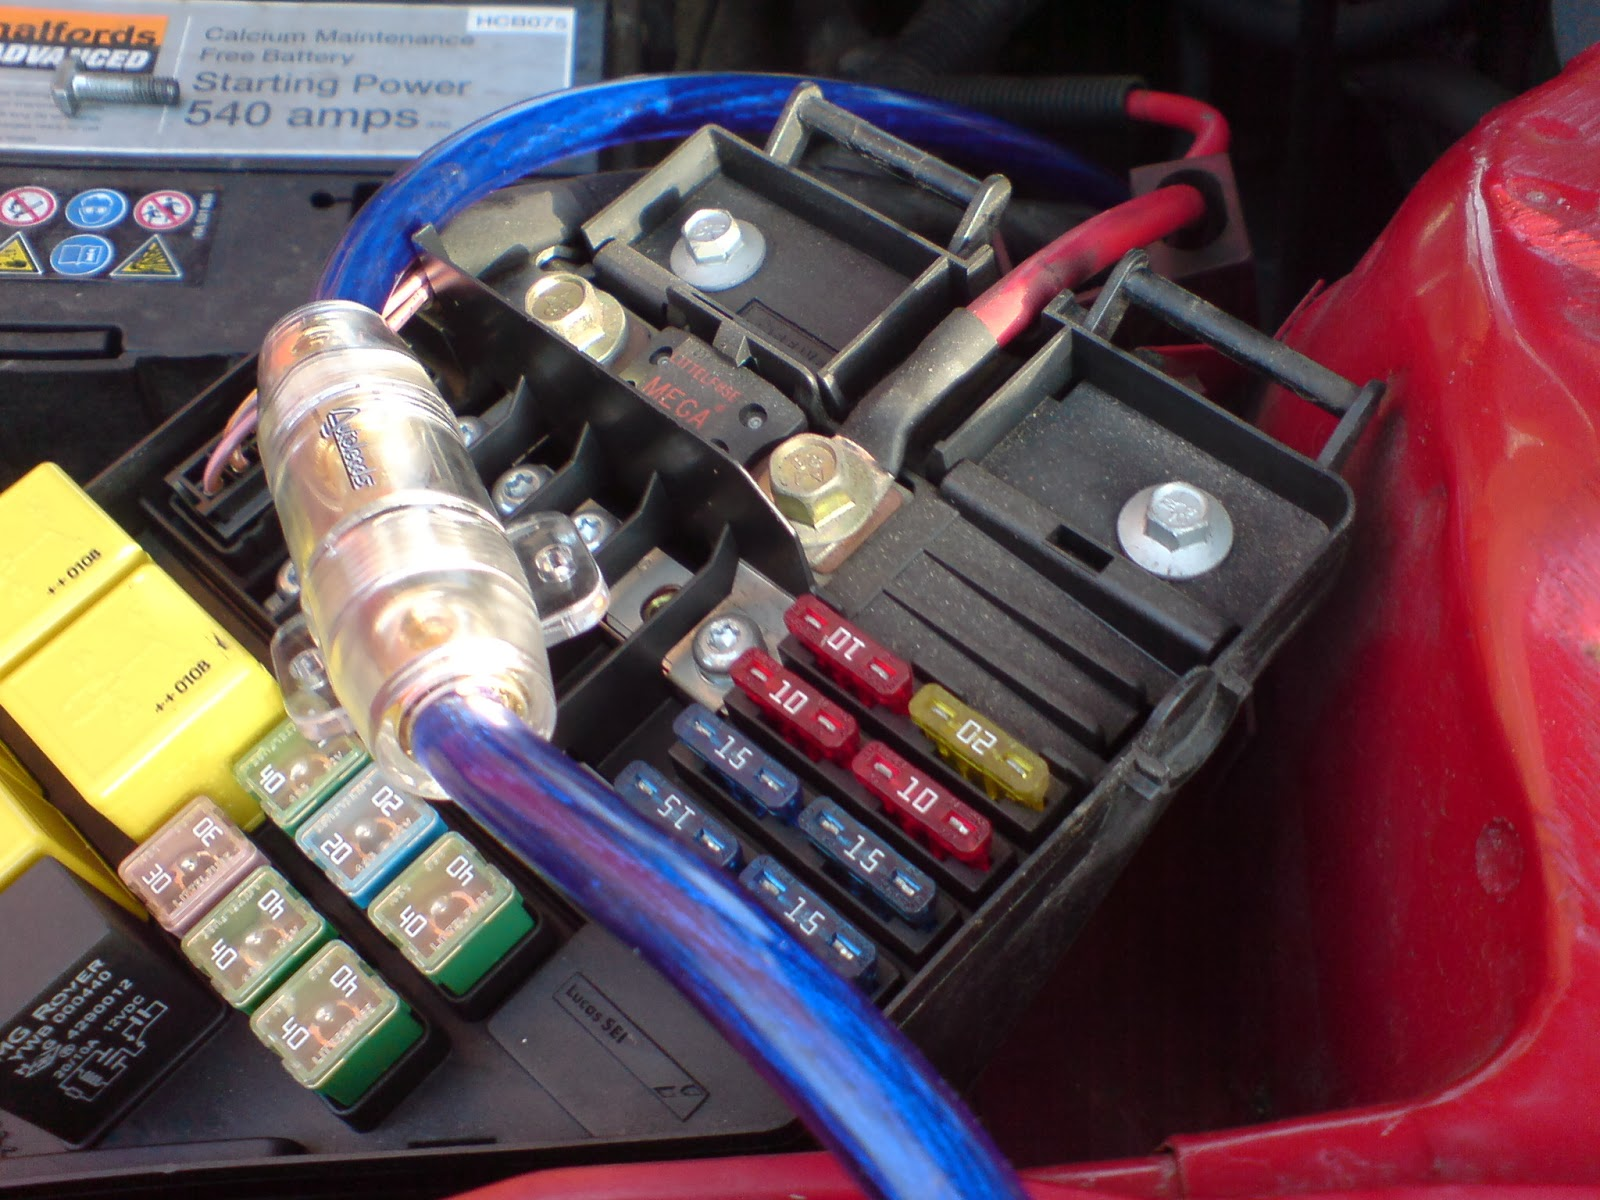 fuse box on a rover 25 wiring diagram toolboxvibe subwoofer and amp box fitted mg rover [ 1600 x 1200 Pixel ]